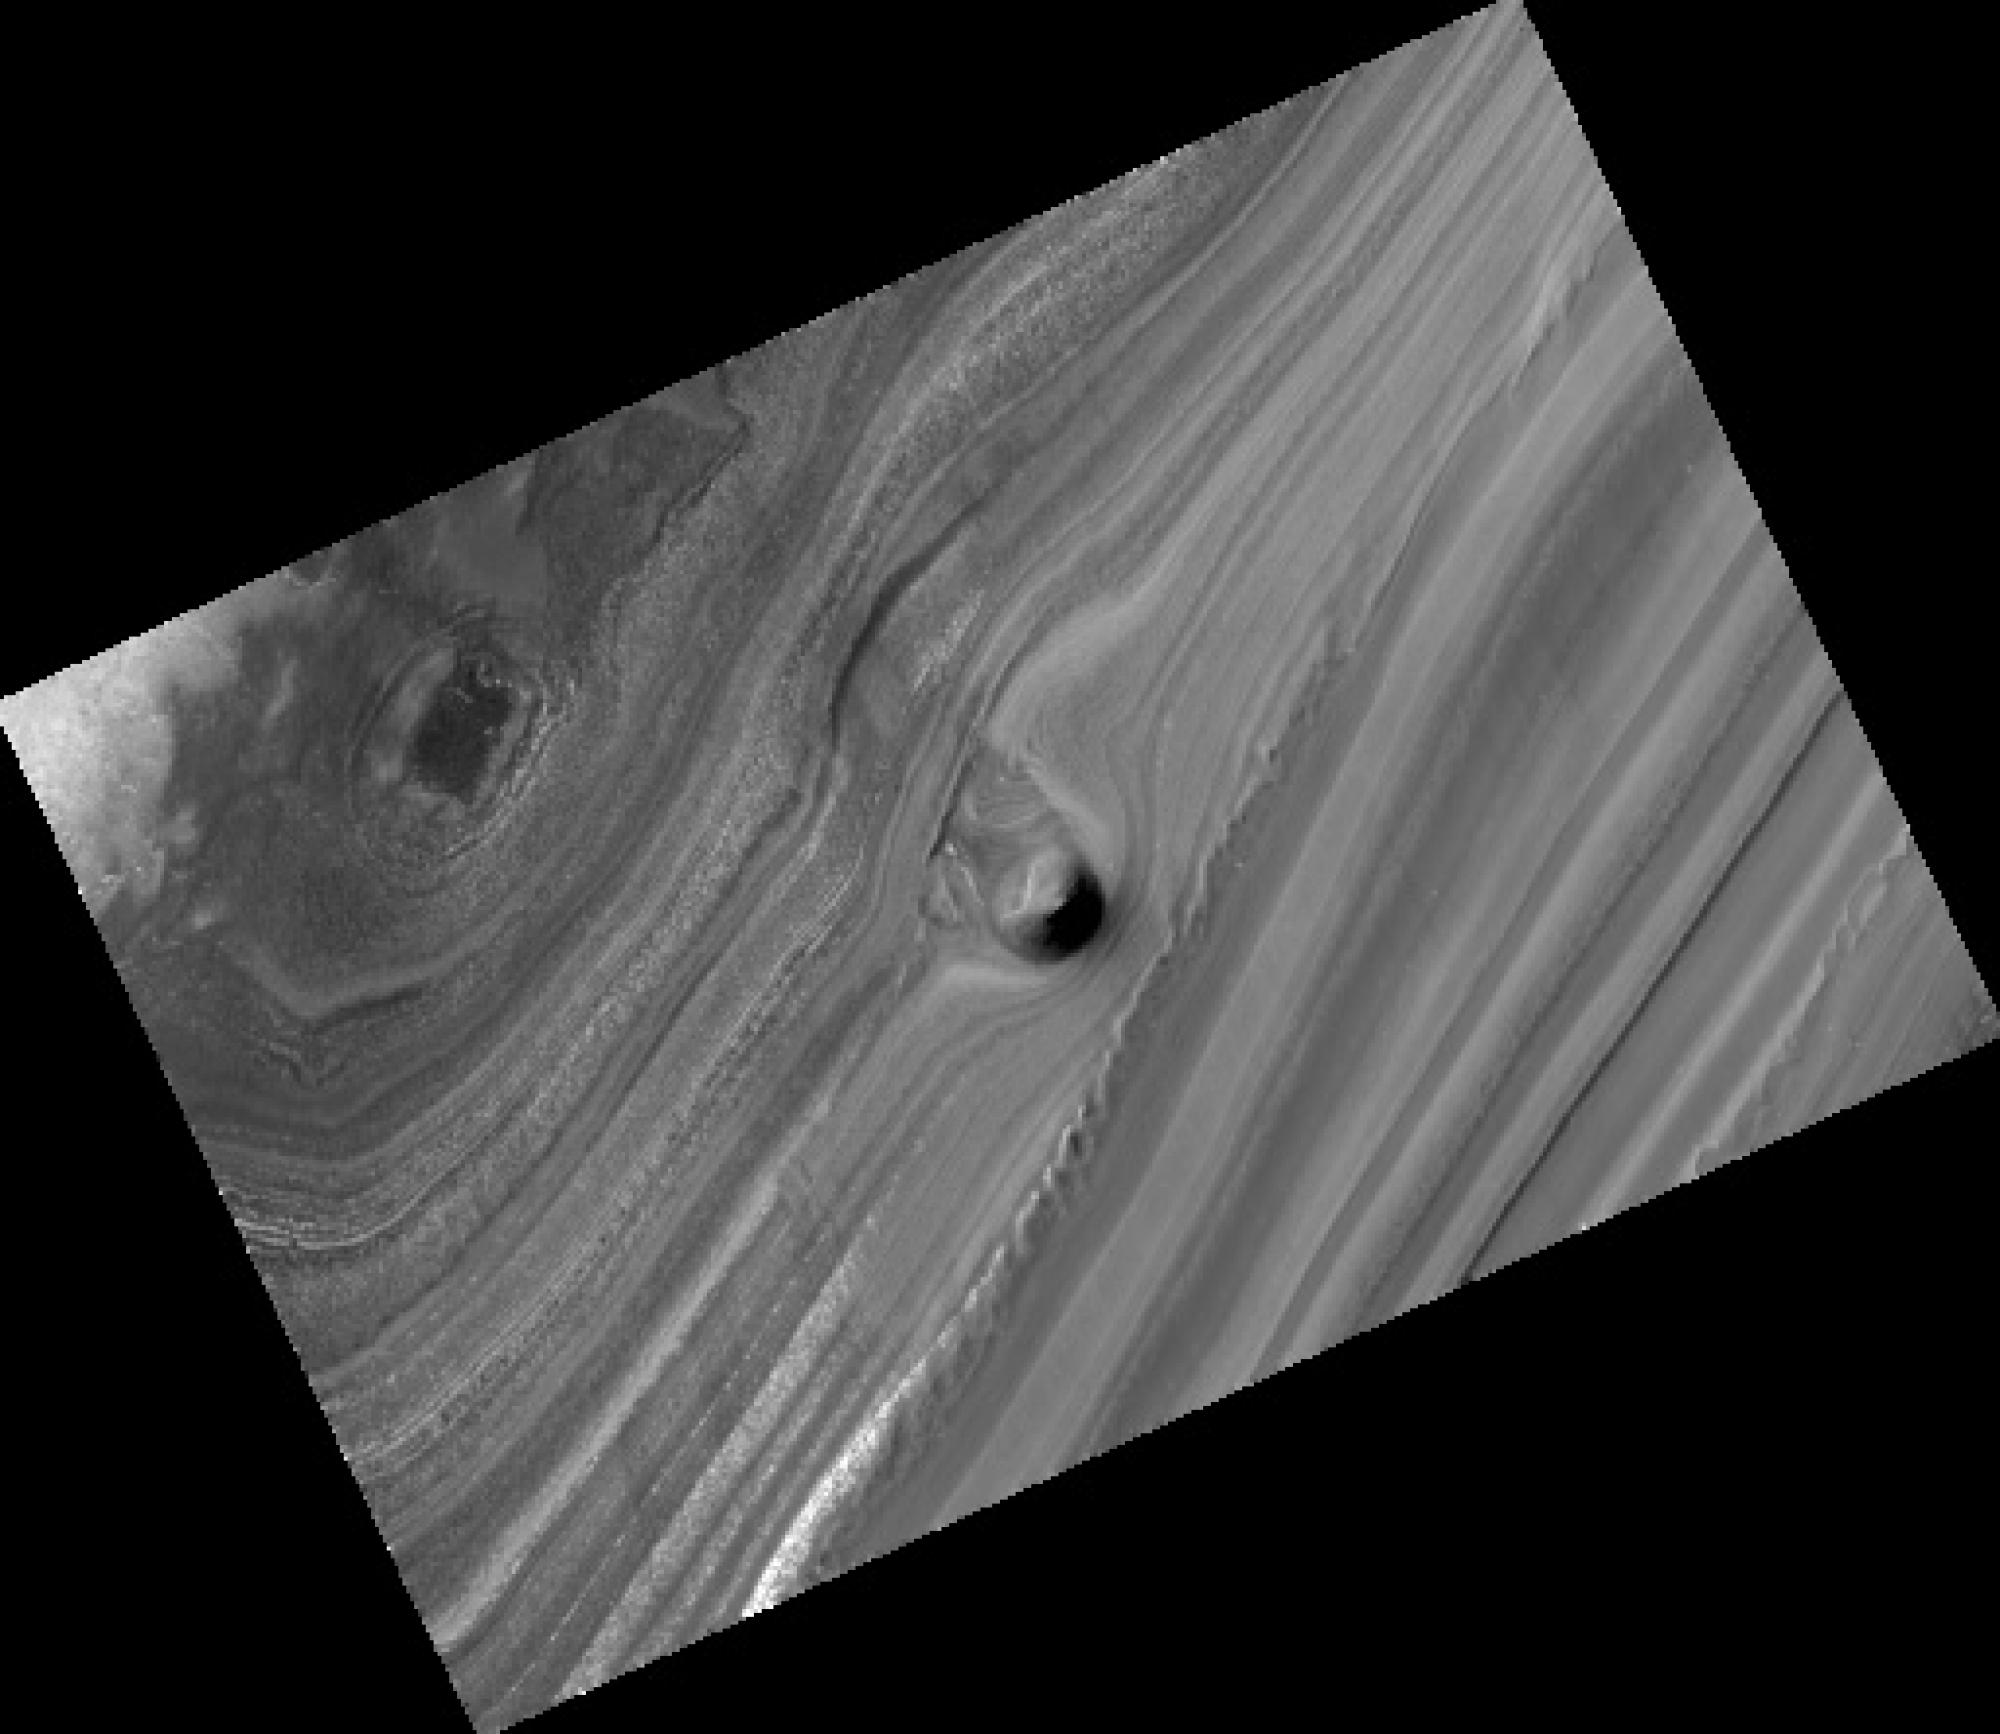 The UA's HiRISE camera on NASA's Mars Reconnaissance Orbiter found this odd, solitary hill part-way down an exposed section of Mars' north polar layered deposits. The 40-meter  high conical mound is likely the remnant of a buried impact crater, UA planeta